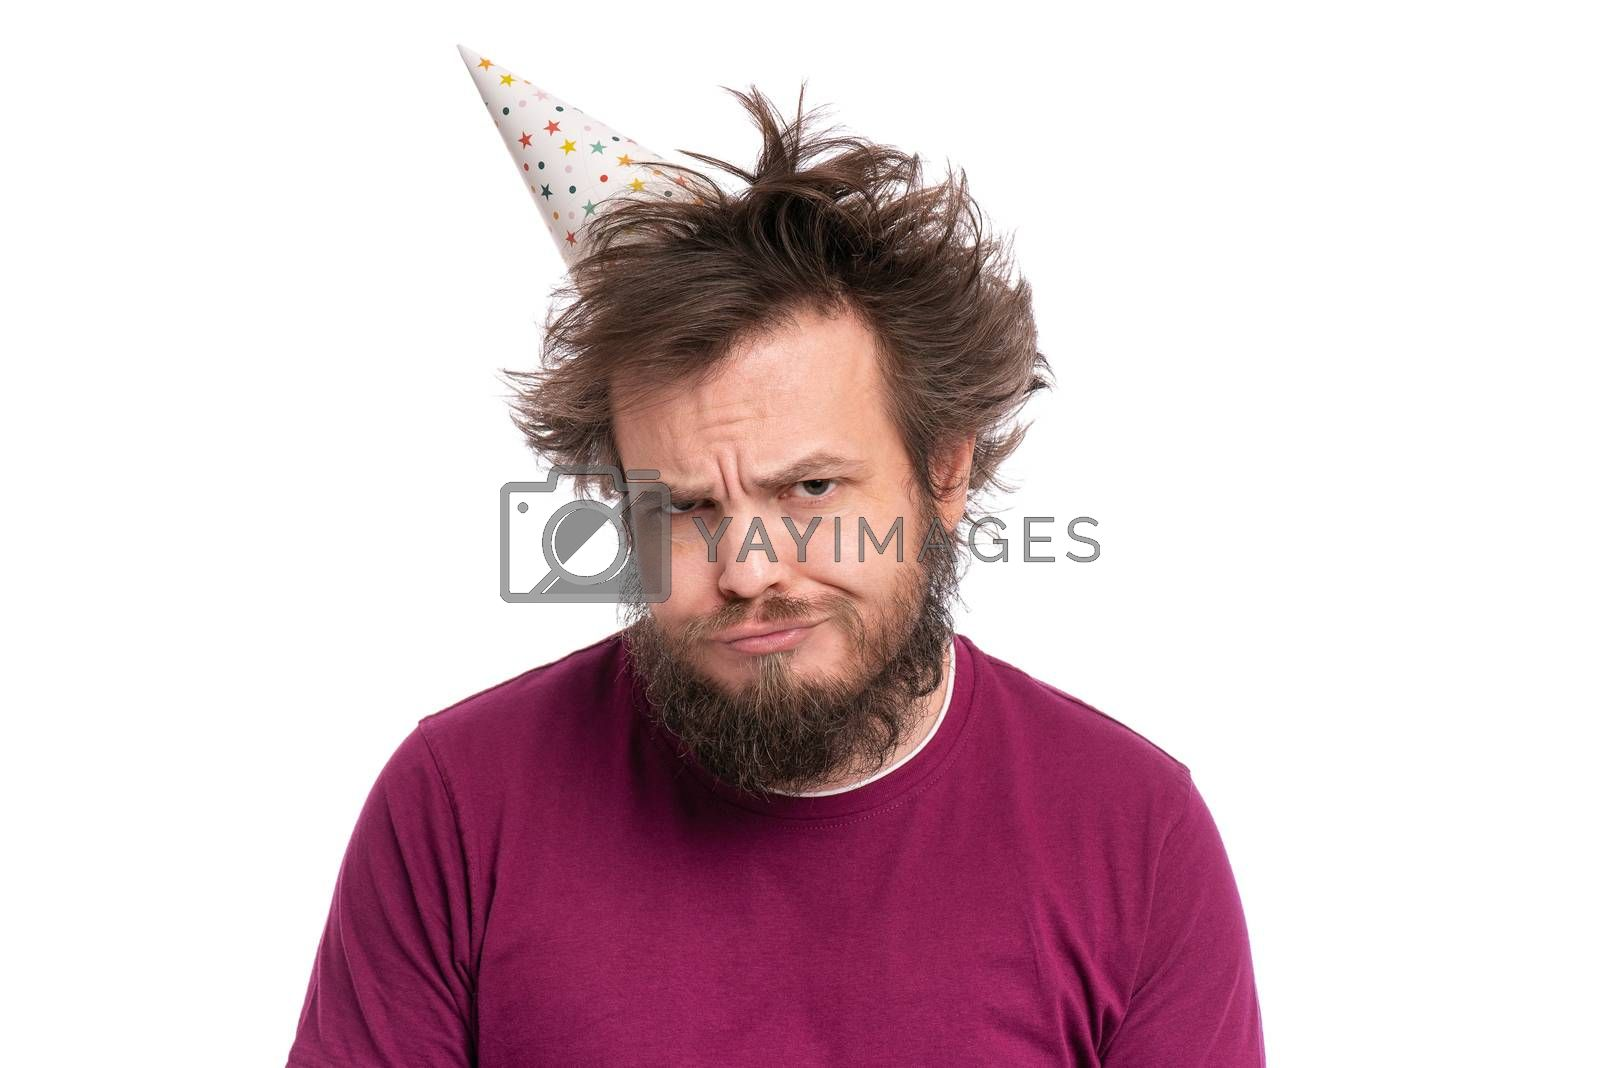 Crazy bearded Man with funny Haircut in birthday cap, isolated on white background. Unappy guy makes Offended Upset grimace. Holidays, Emotions and Signs concept.